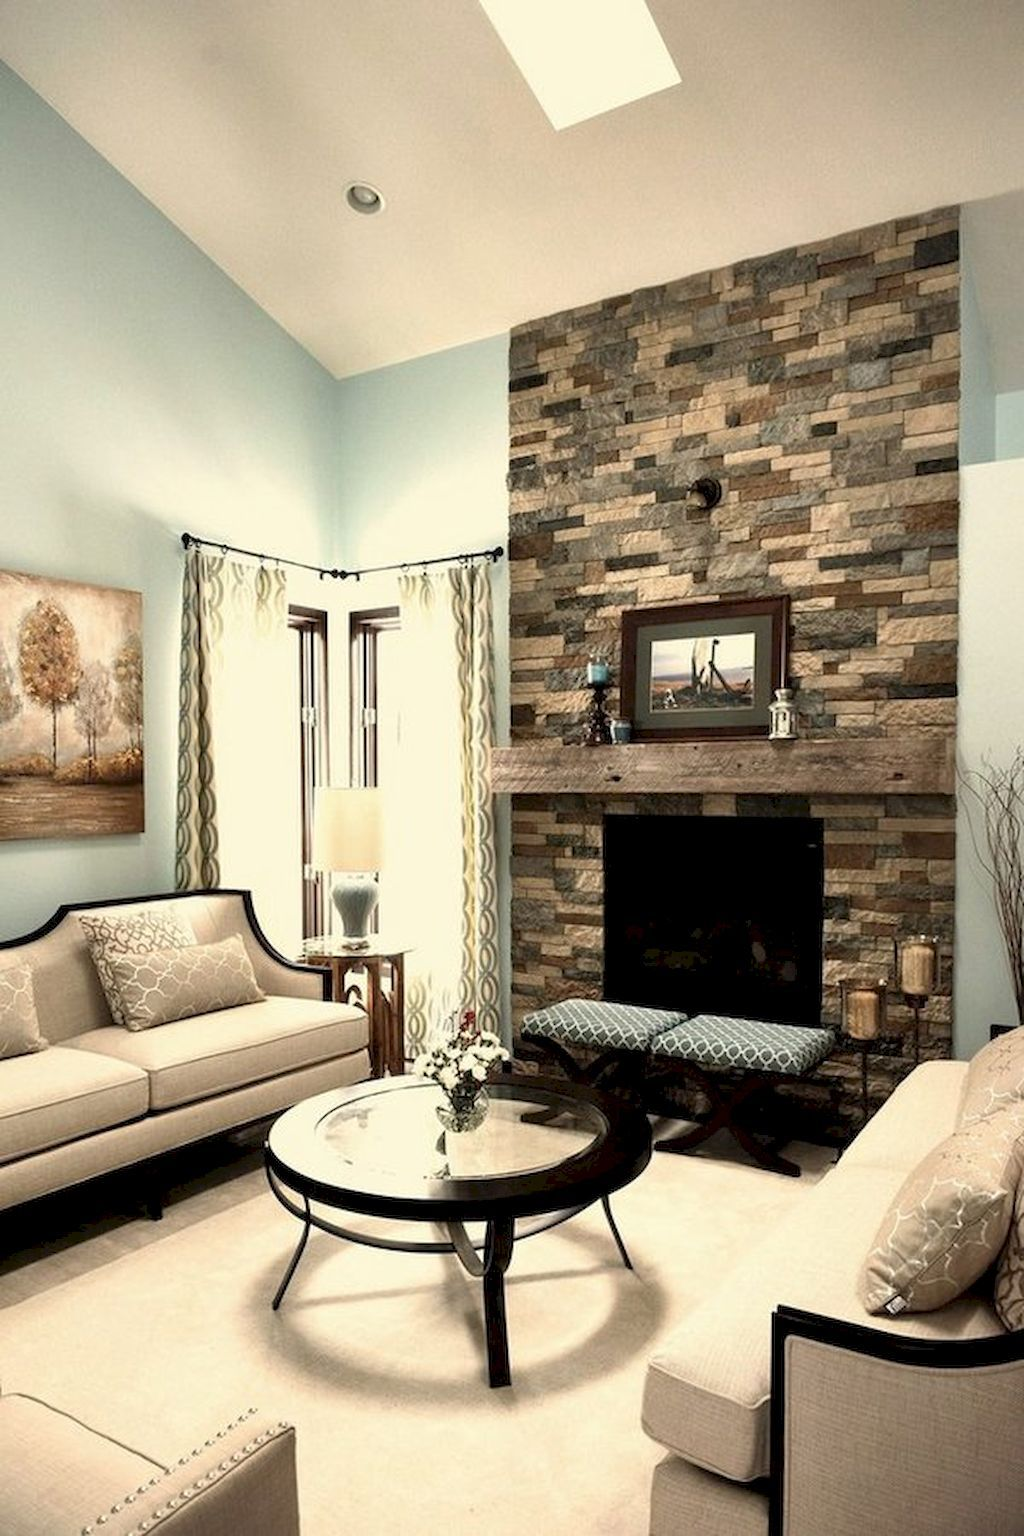 Lovelyving Architecture And Design Ideas Living Room Design Small Spaces Living Room Decor Fireplace Small Living Room Design